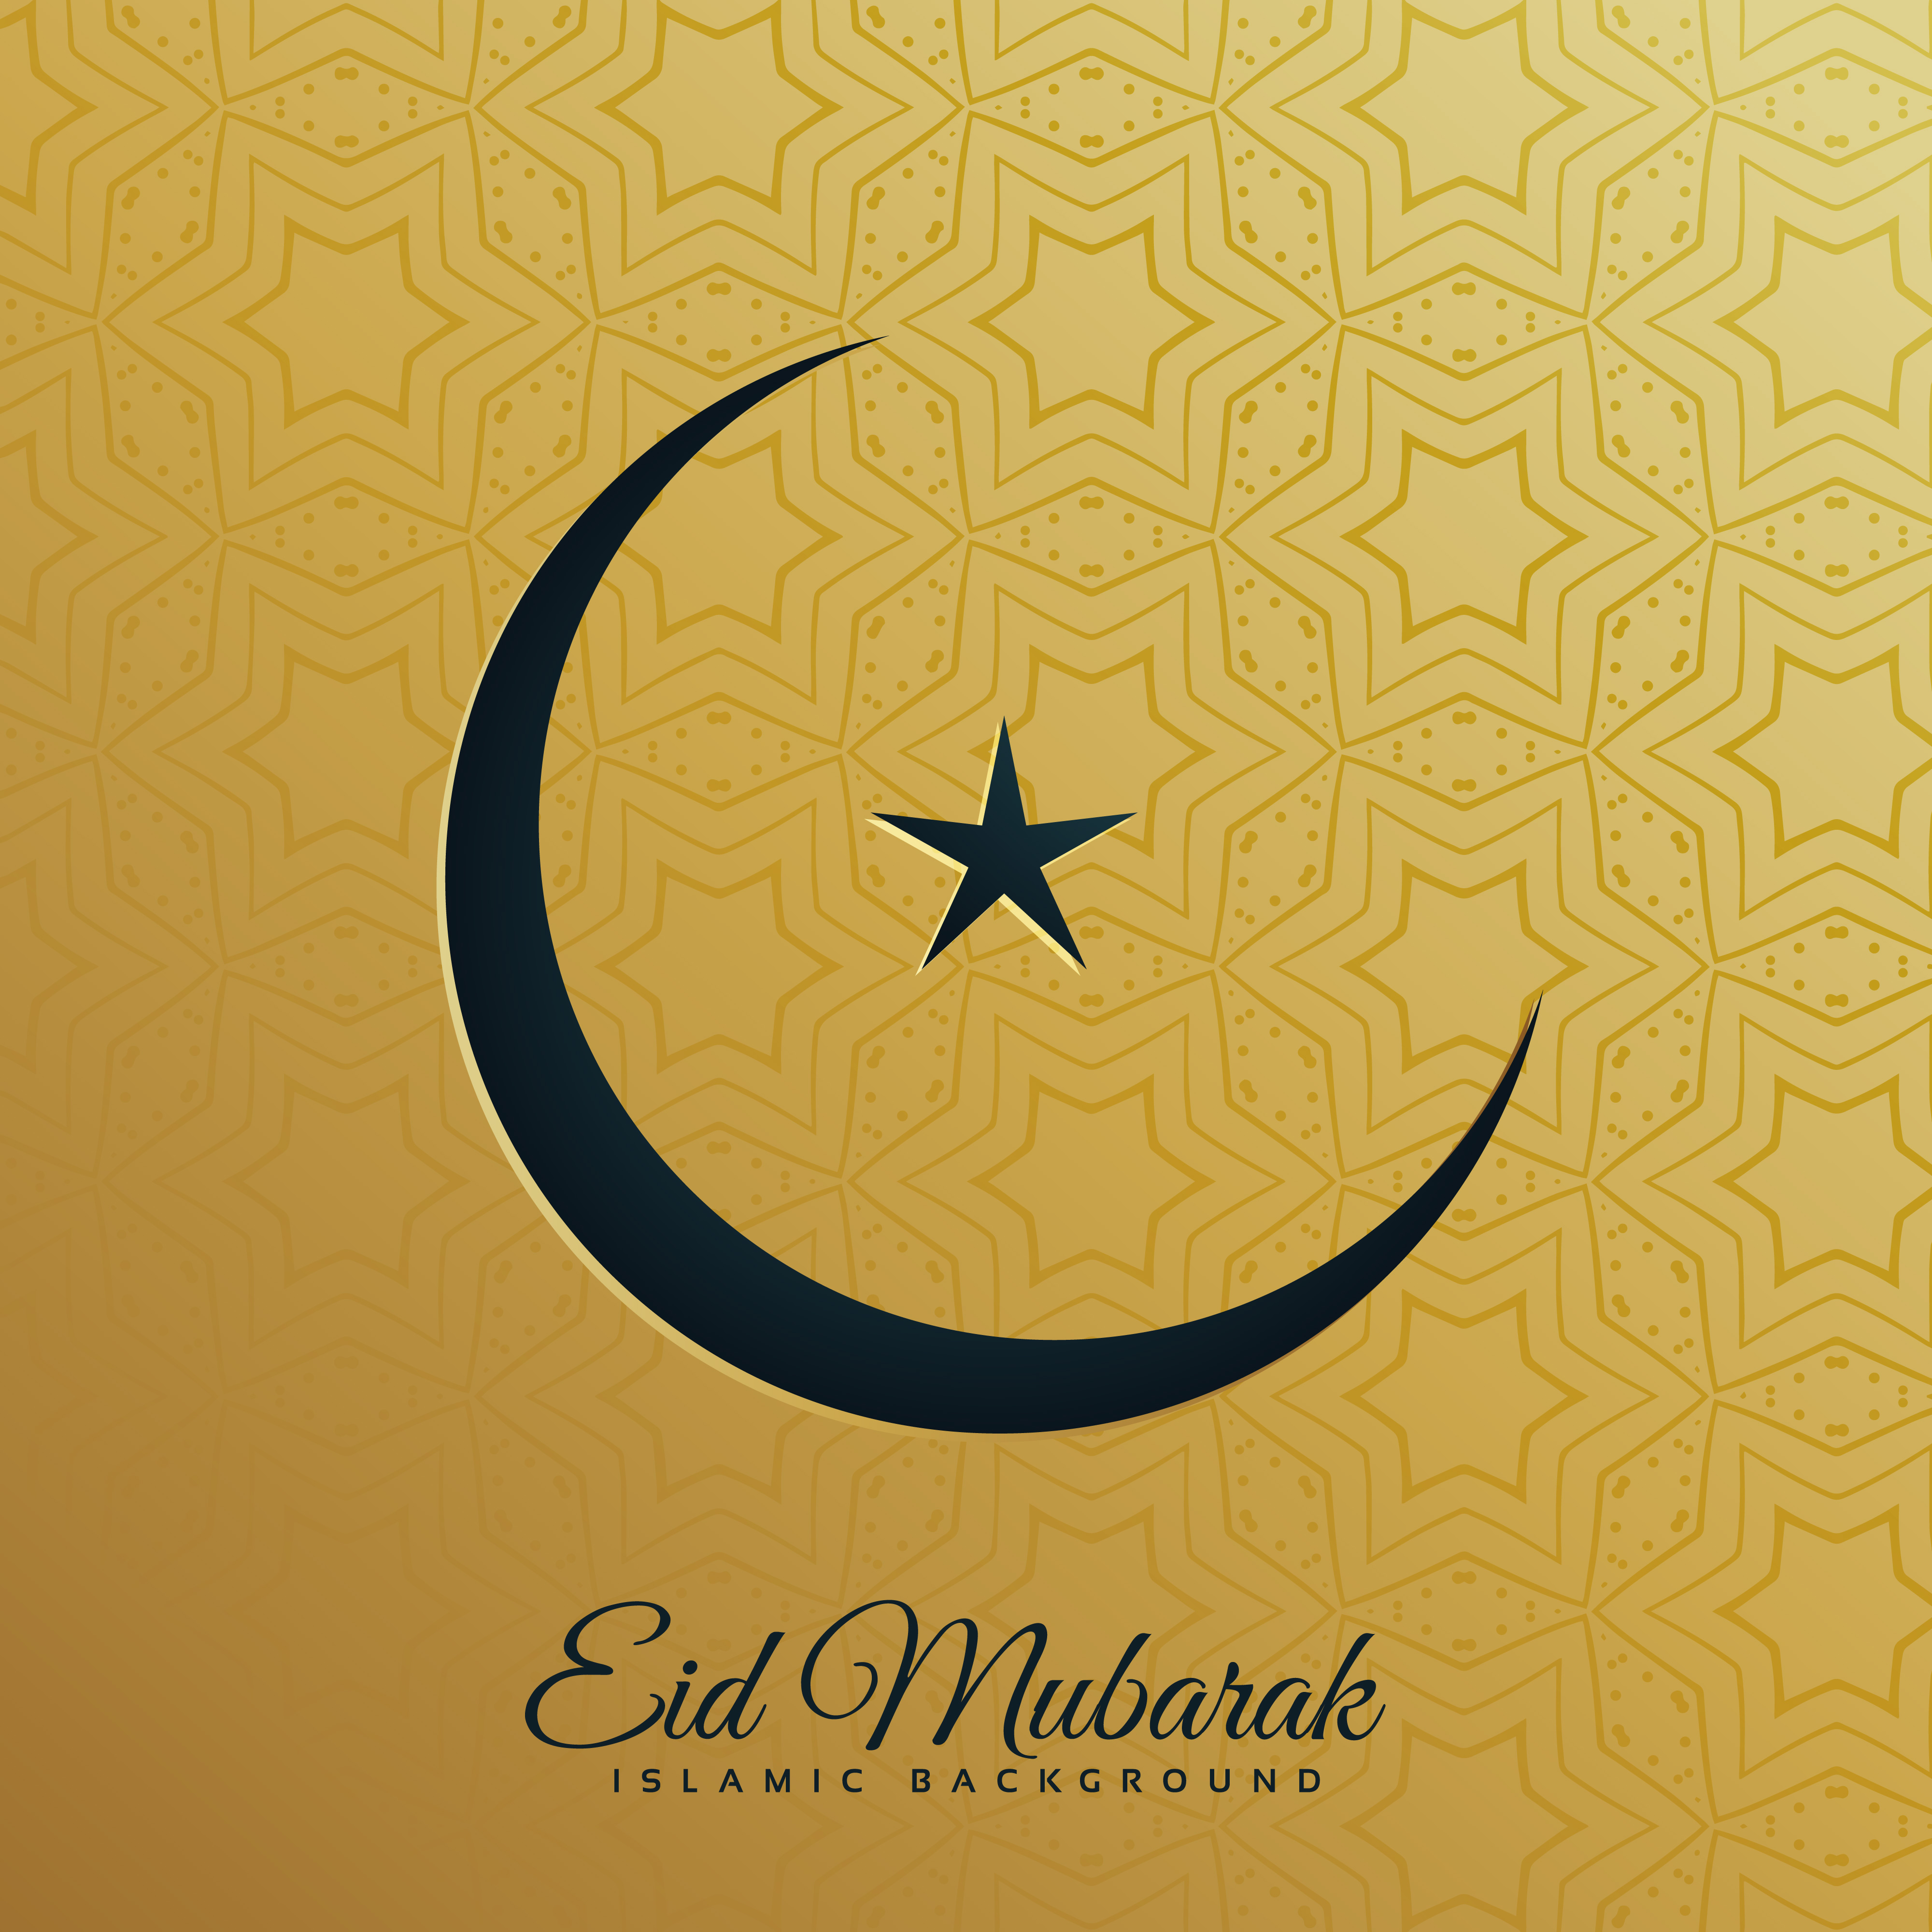 Crescent Moon And Star On Golden Background For Eid